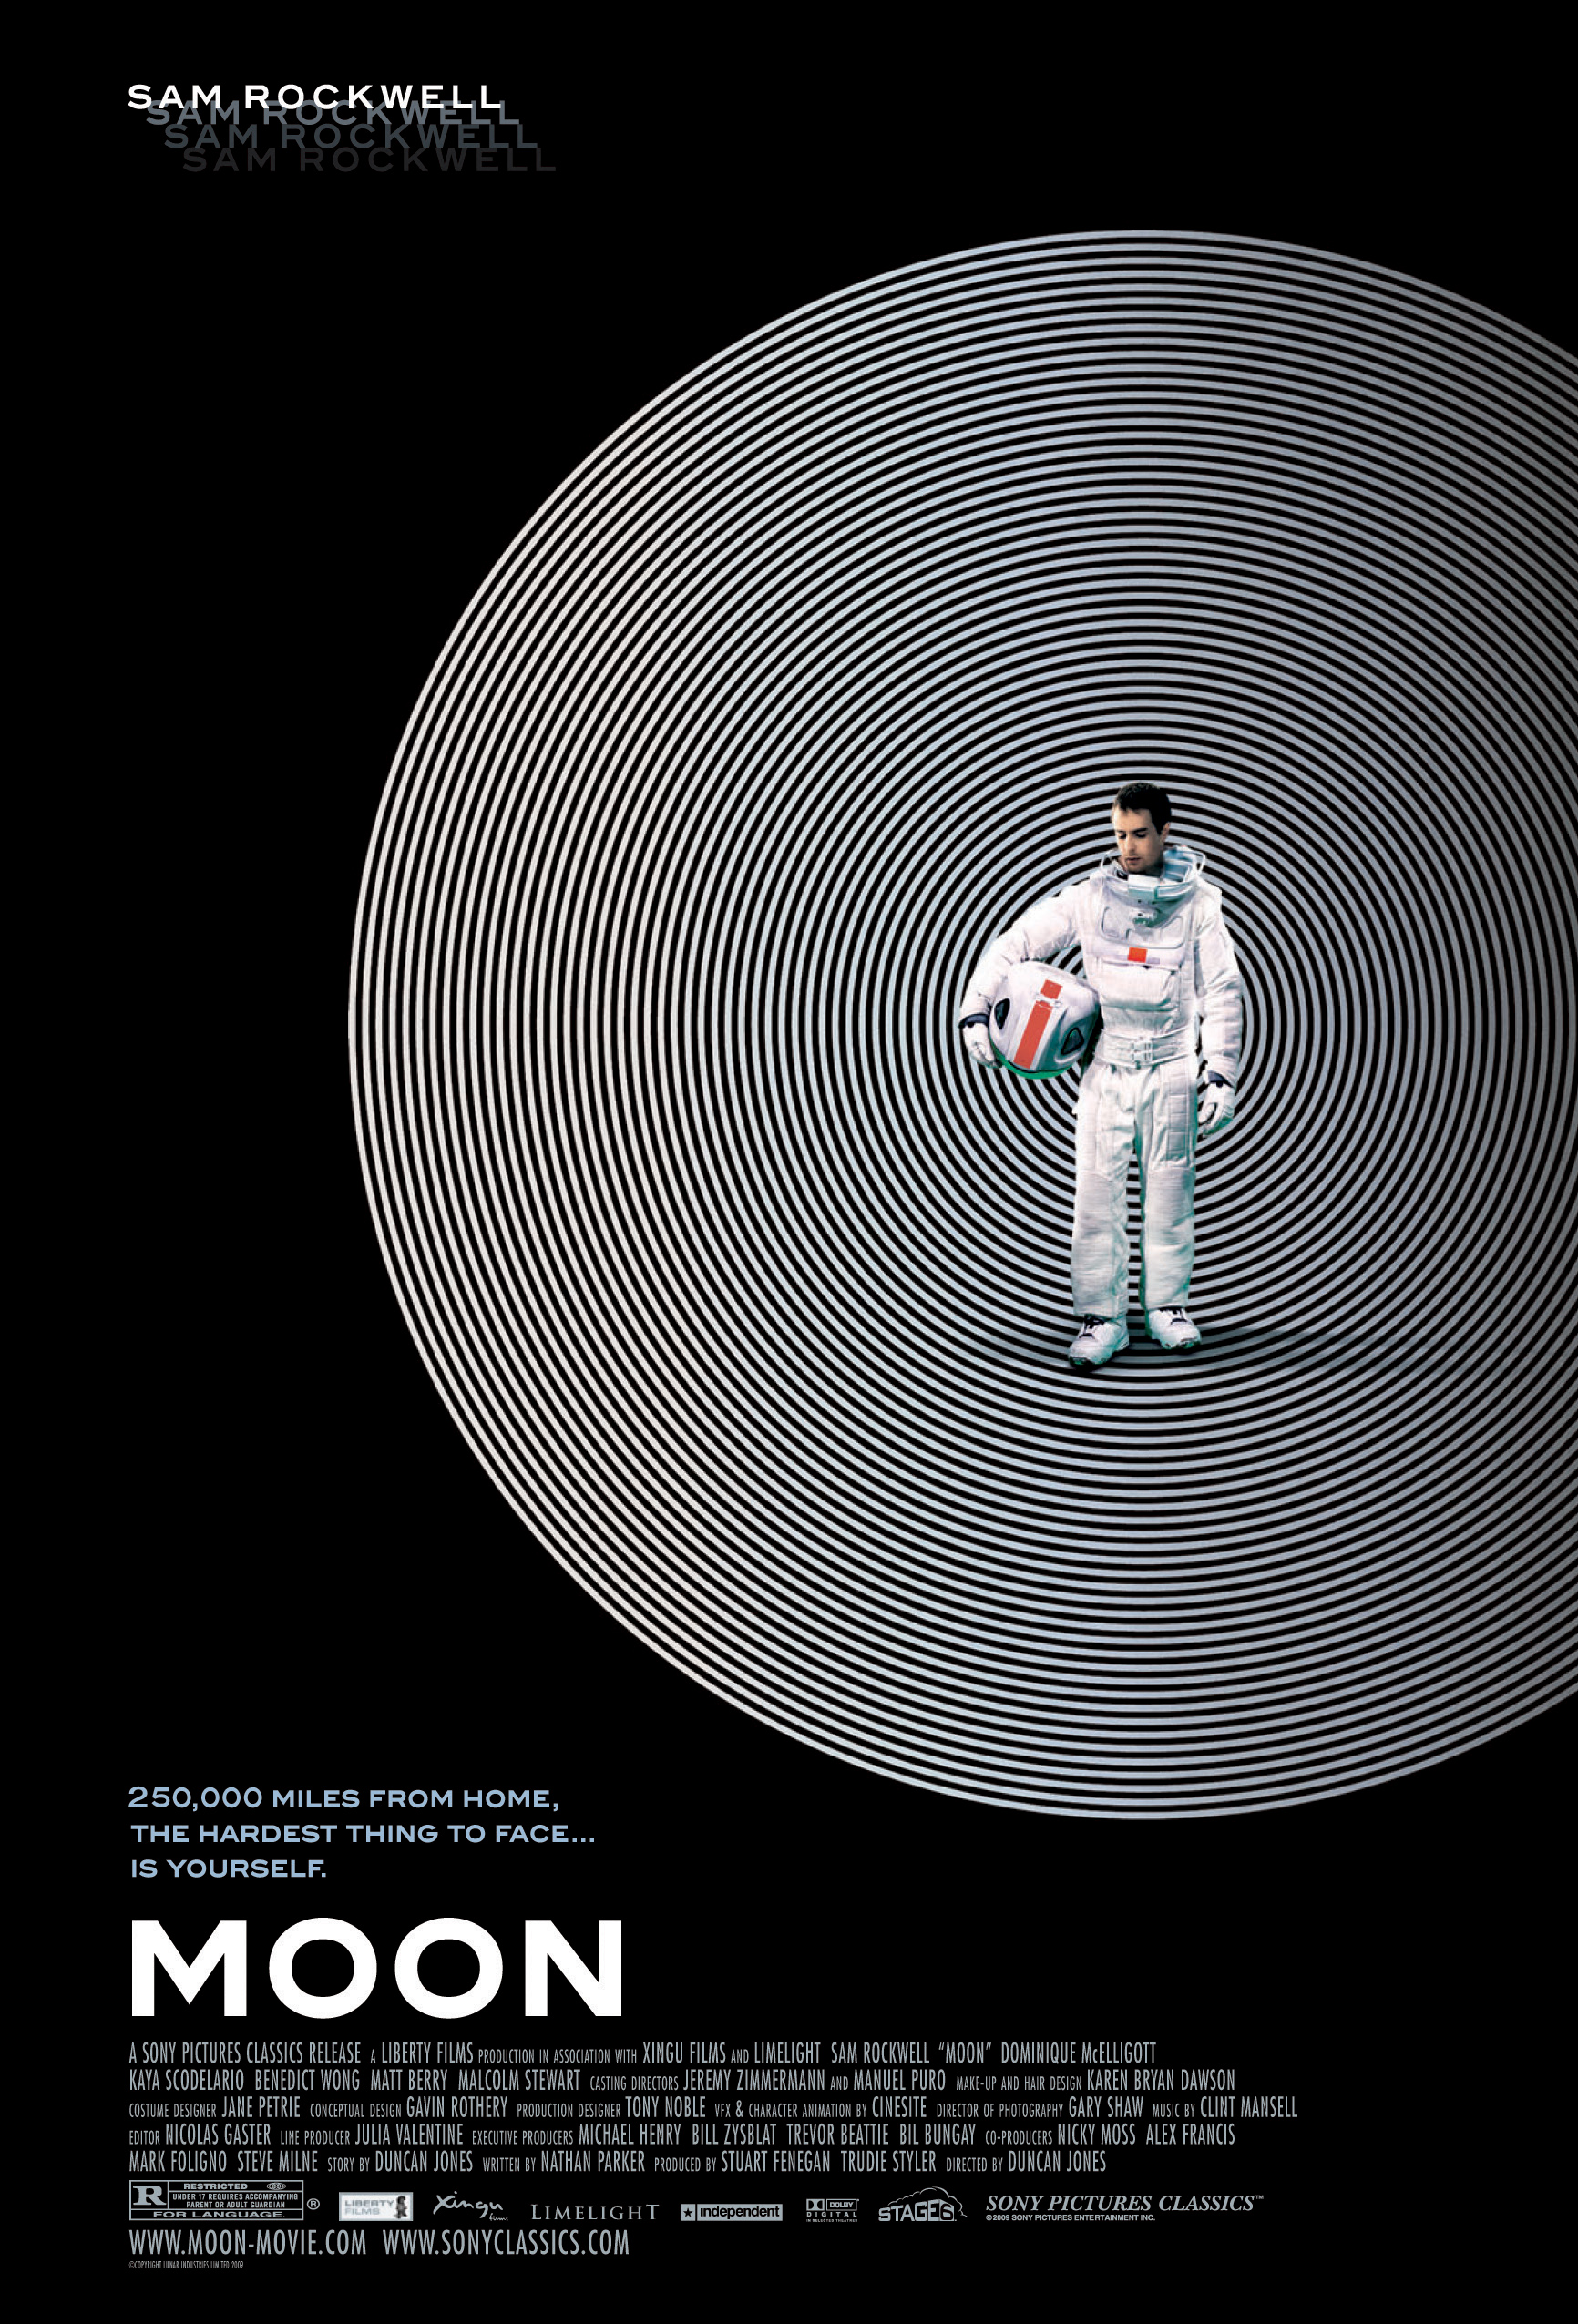 MOON - Poster Available Now!